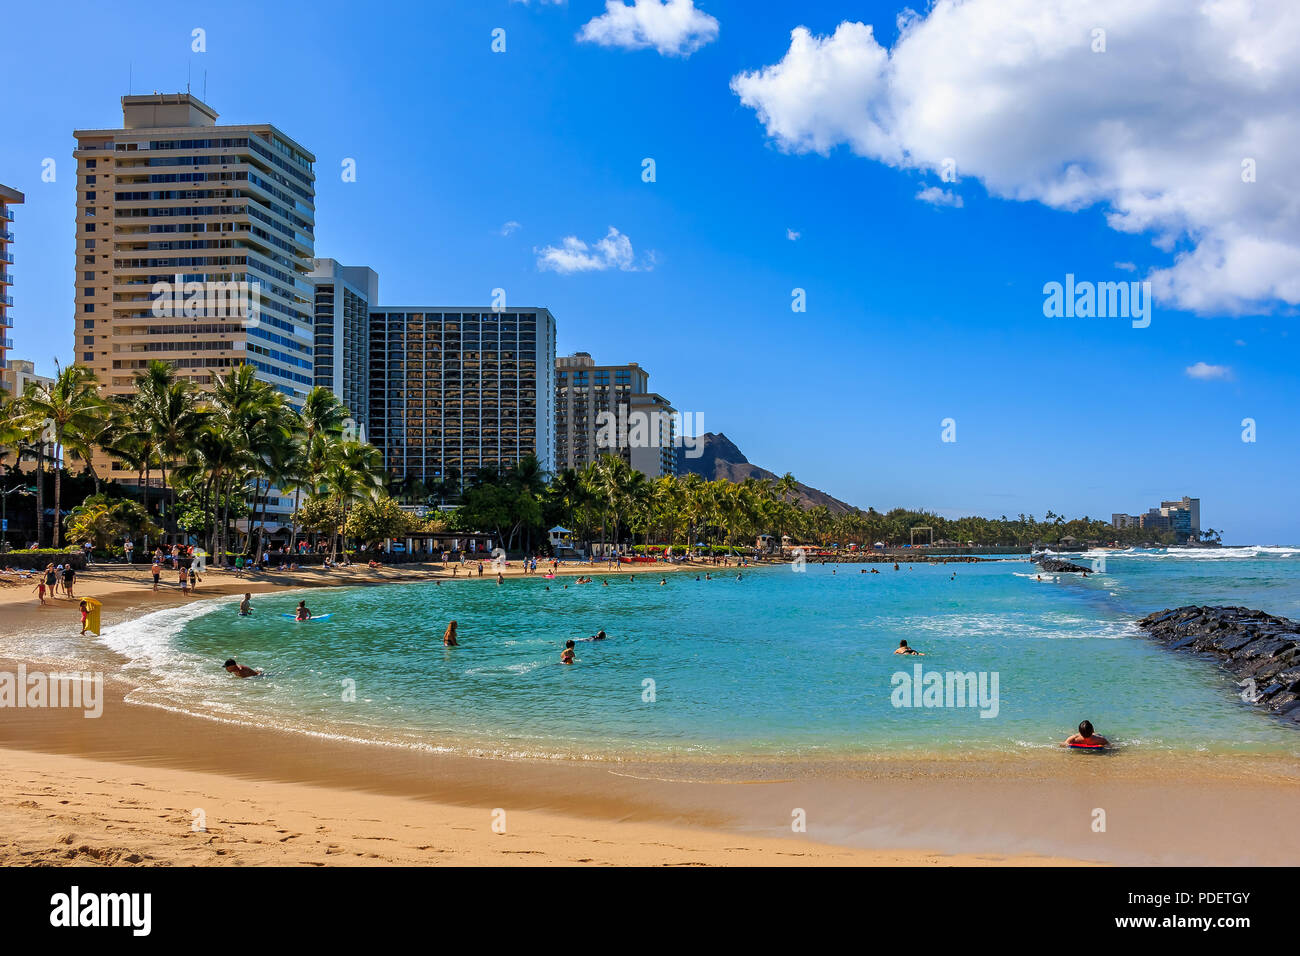 Day time view of Waikiki Beach and Diamond Head in Honolulu in Hawaii, USA - Stock Image